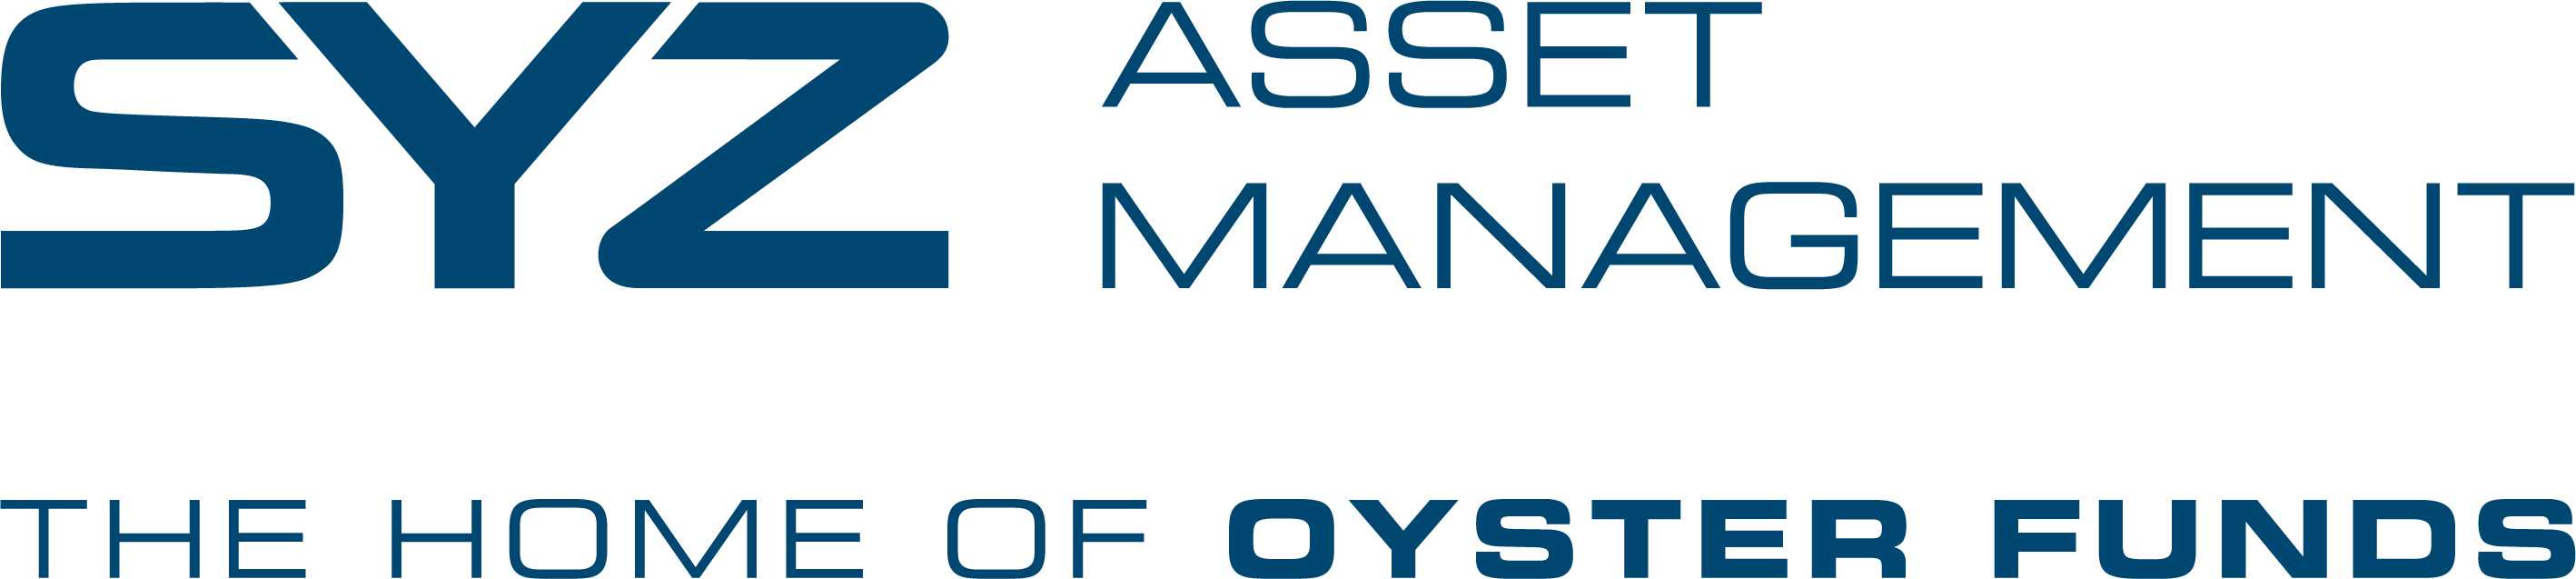 SYZ Asset Management (Luxembourg) S.A.